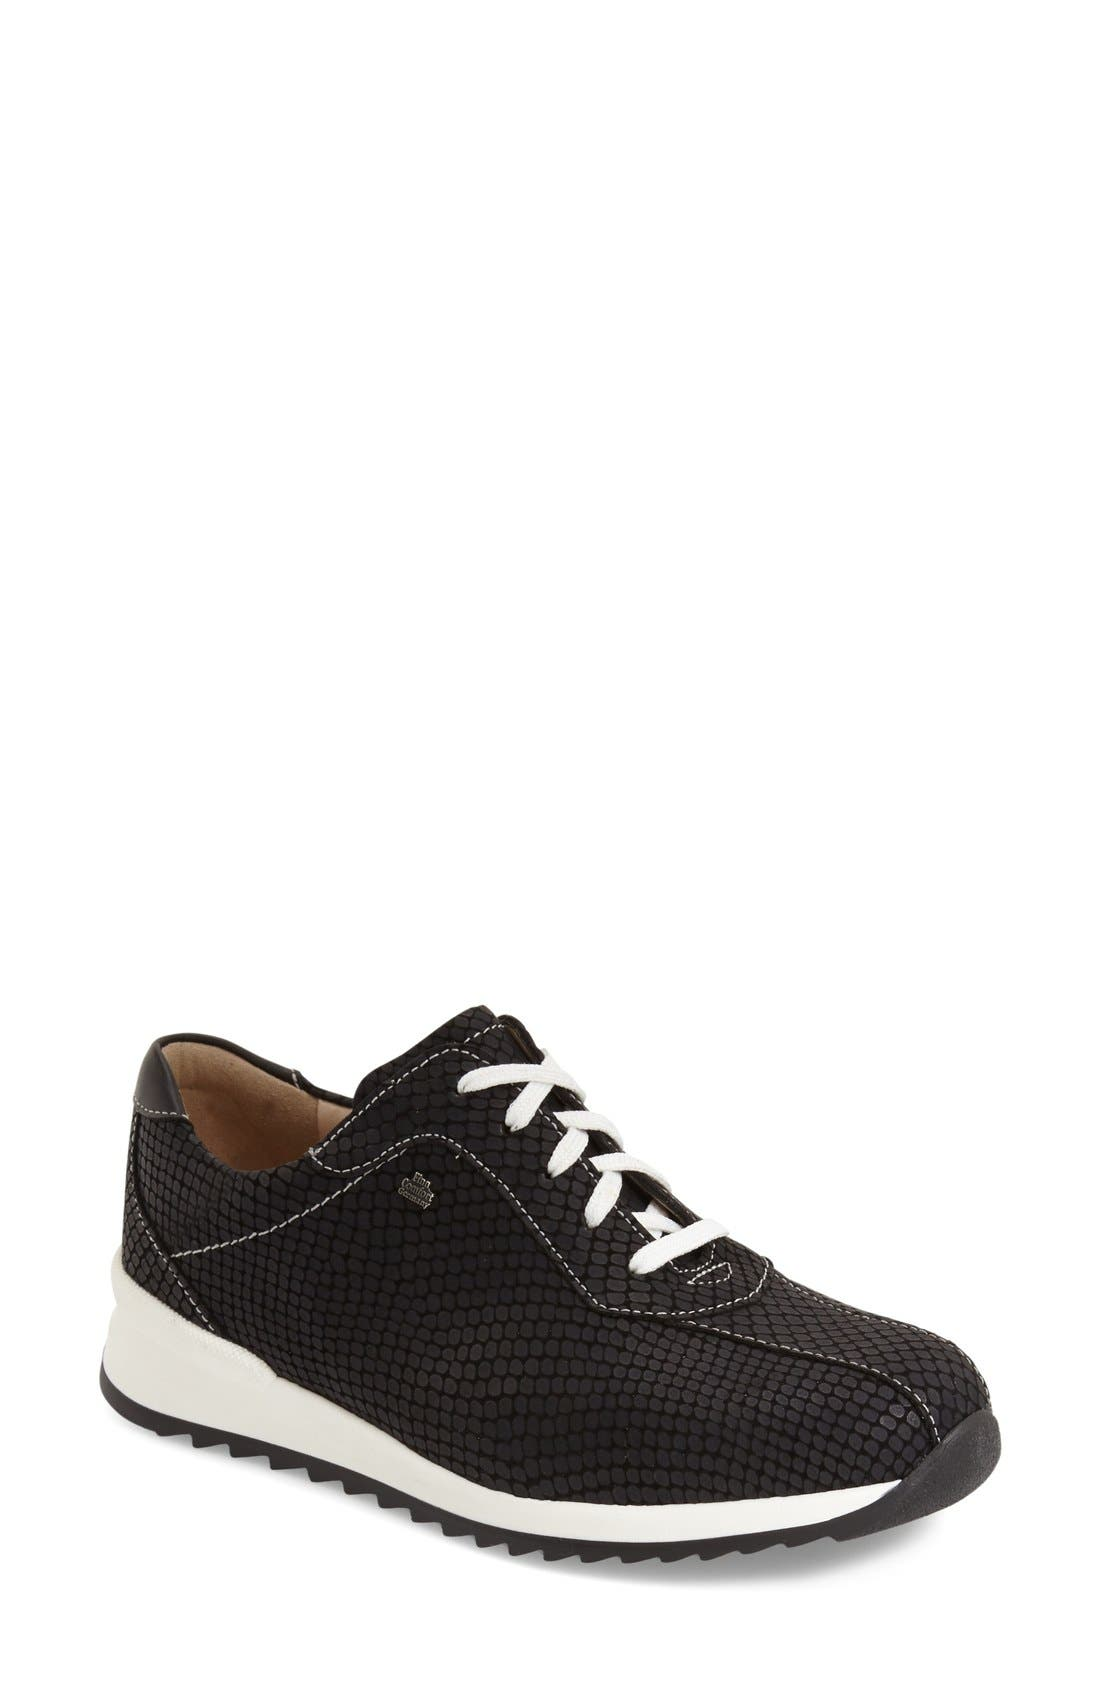 'Sarnia' Sneaker,                         Main,                         color, BLACK NAPPA LEATHER